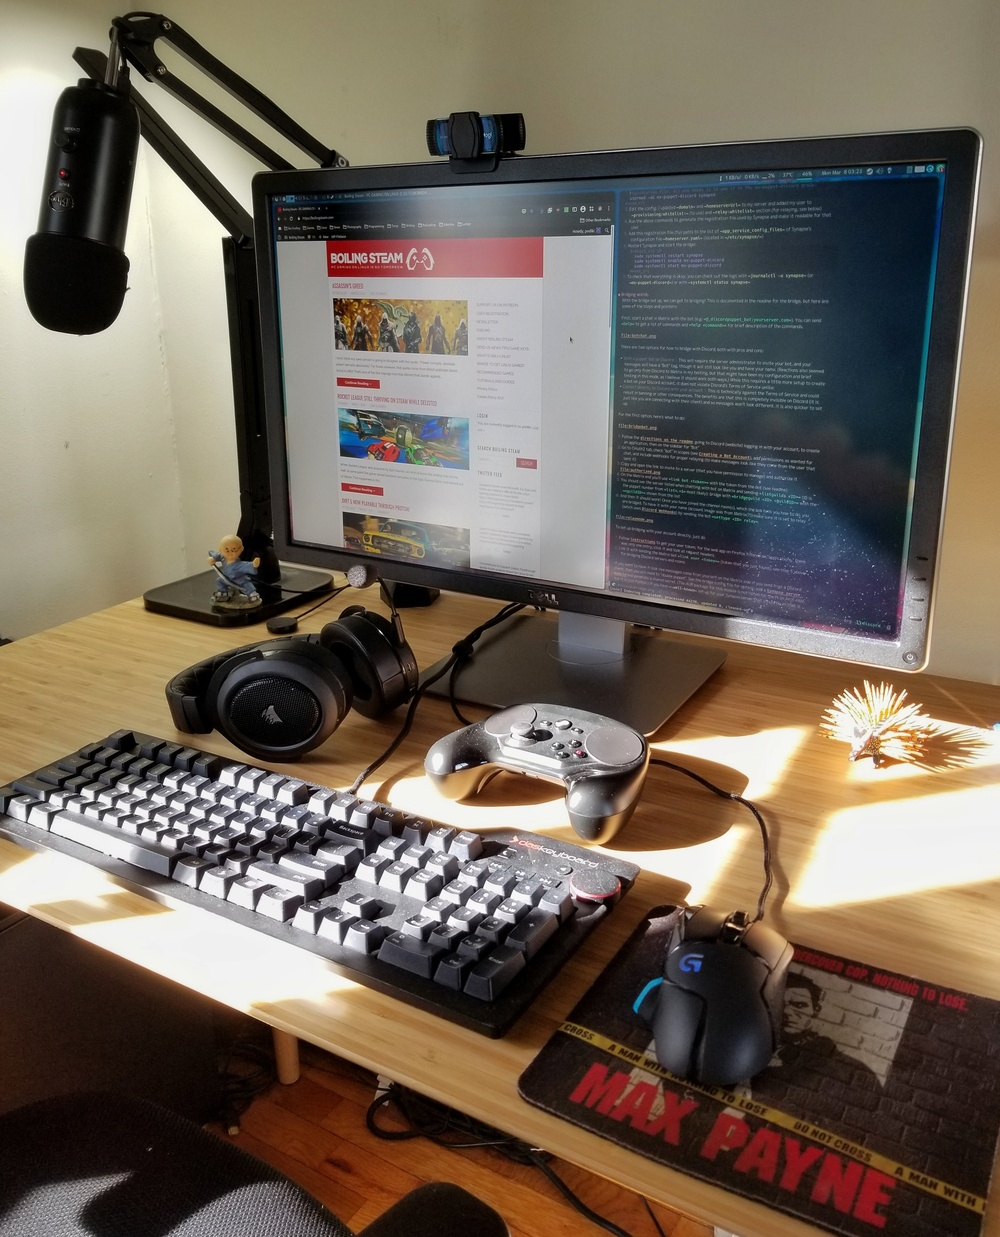 A picture of a wooden desk with computer monitor, keyboard, mouse, and other accessories. Podiki's gaming rig